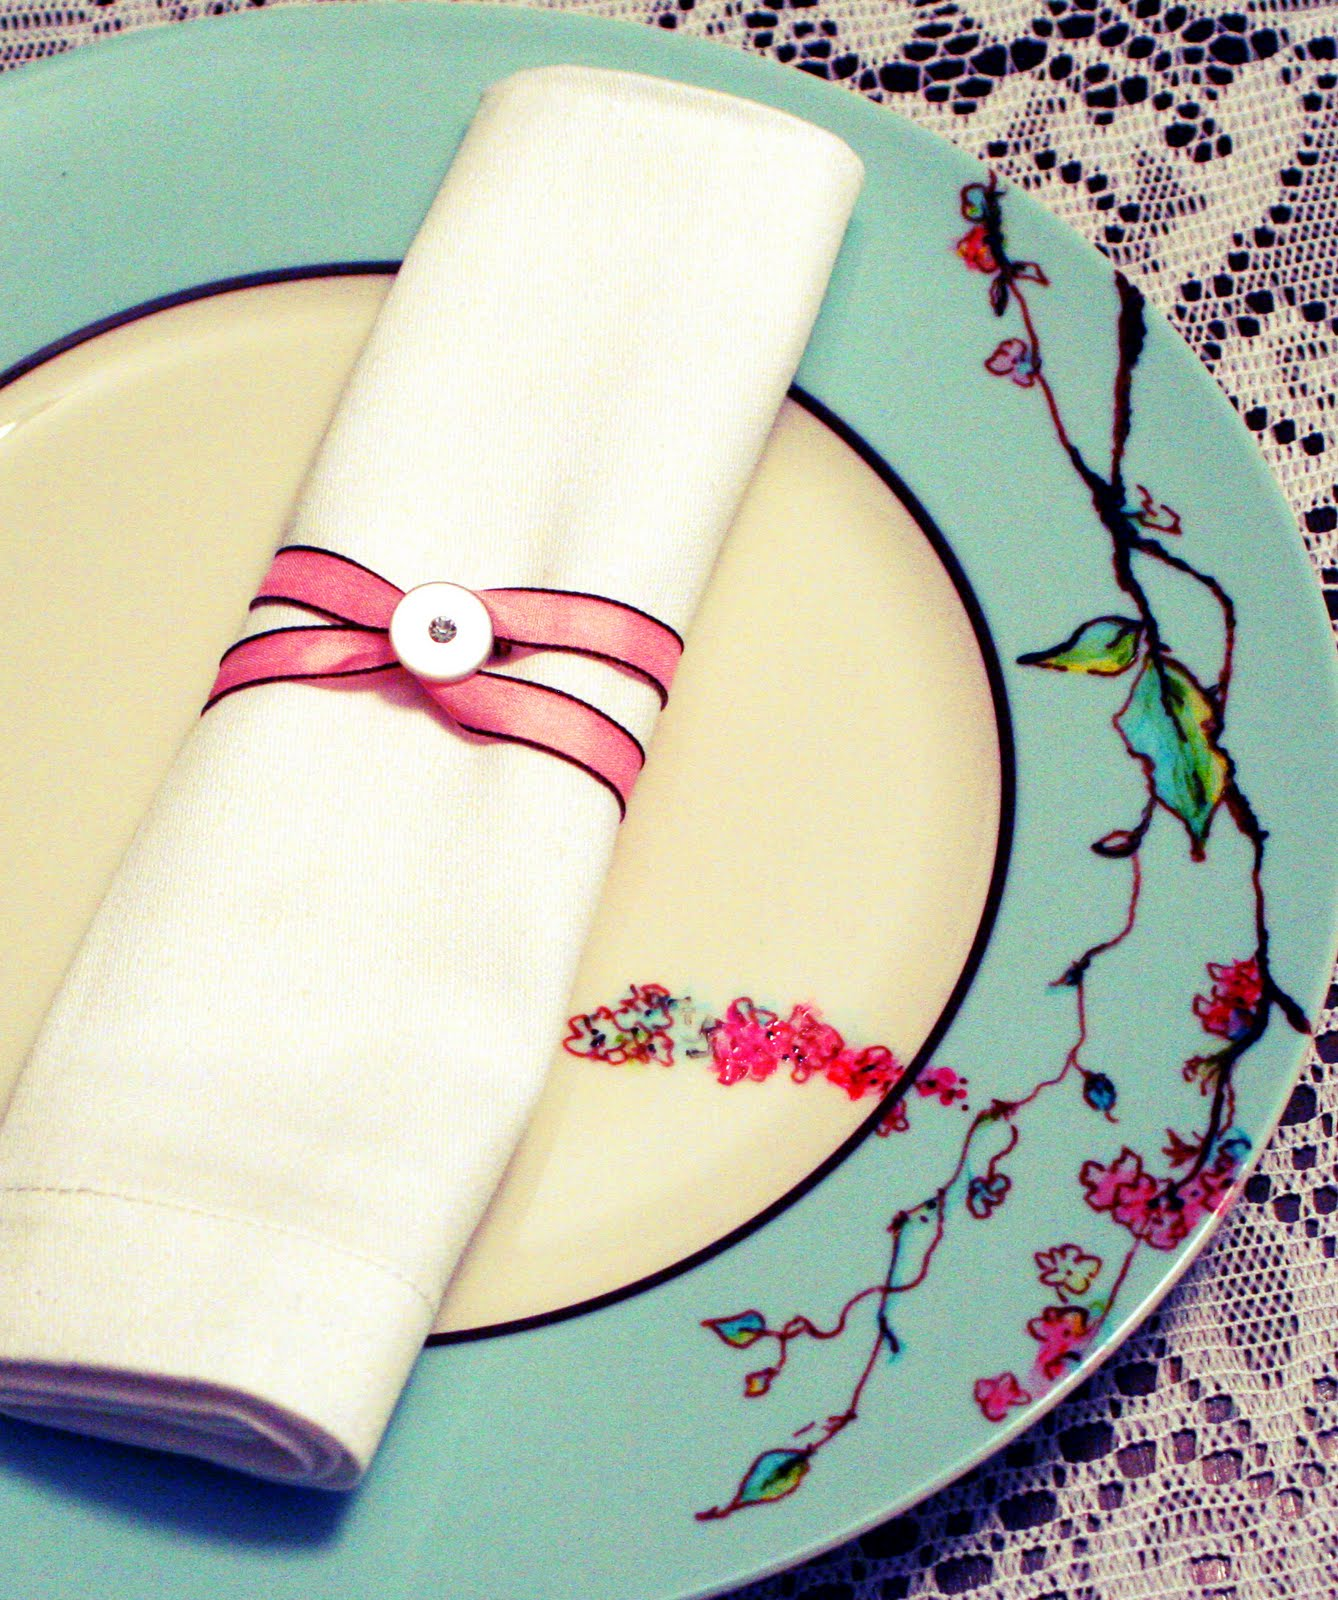 Dirt Cheap Home Decor: Dirt Cheap Decor!: Button Napkin Ring